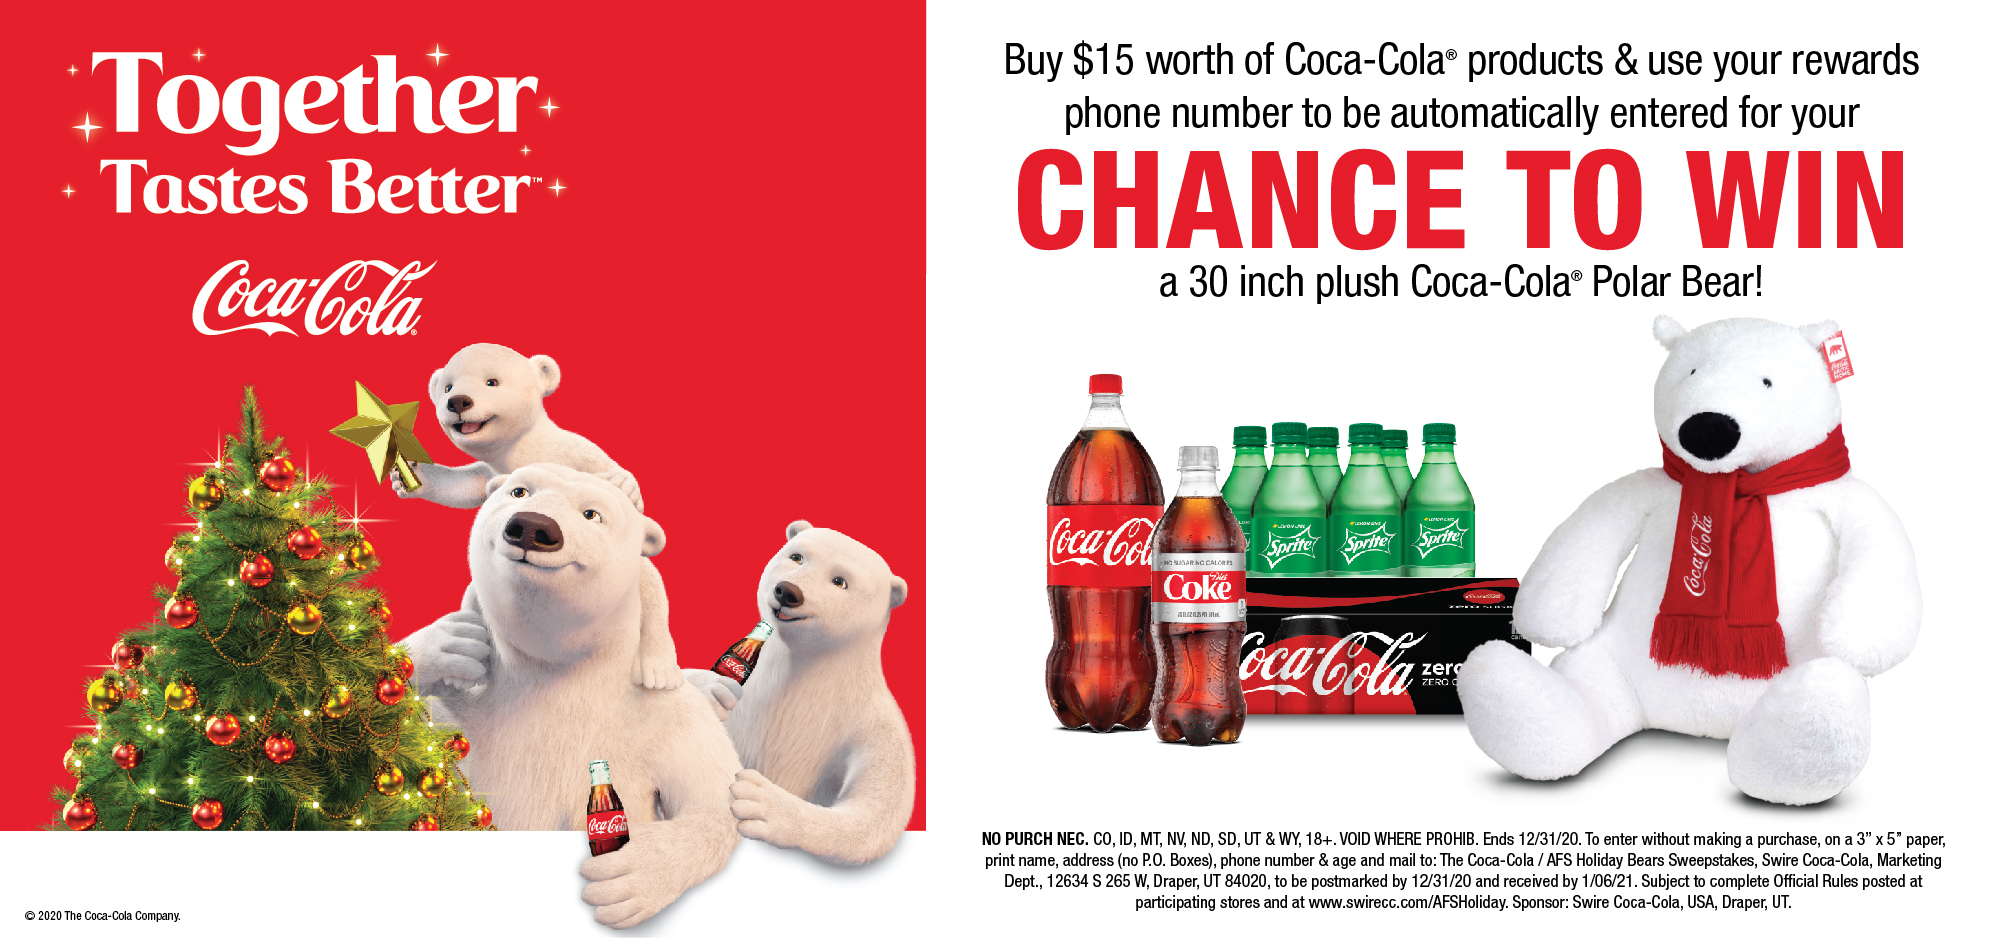 Enter to win a Coke Bear!